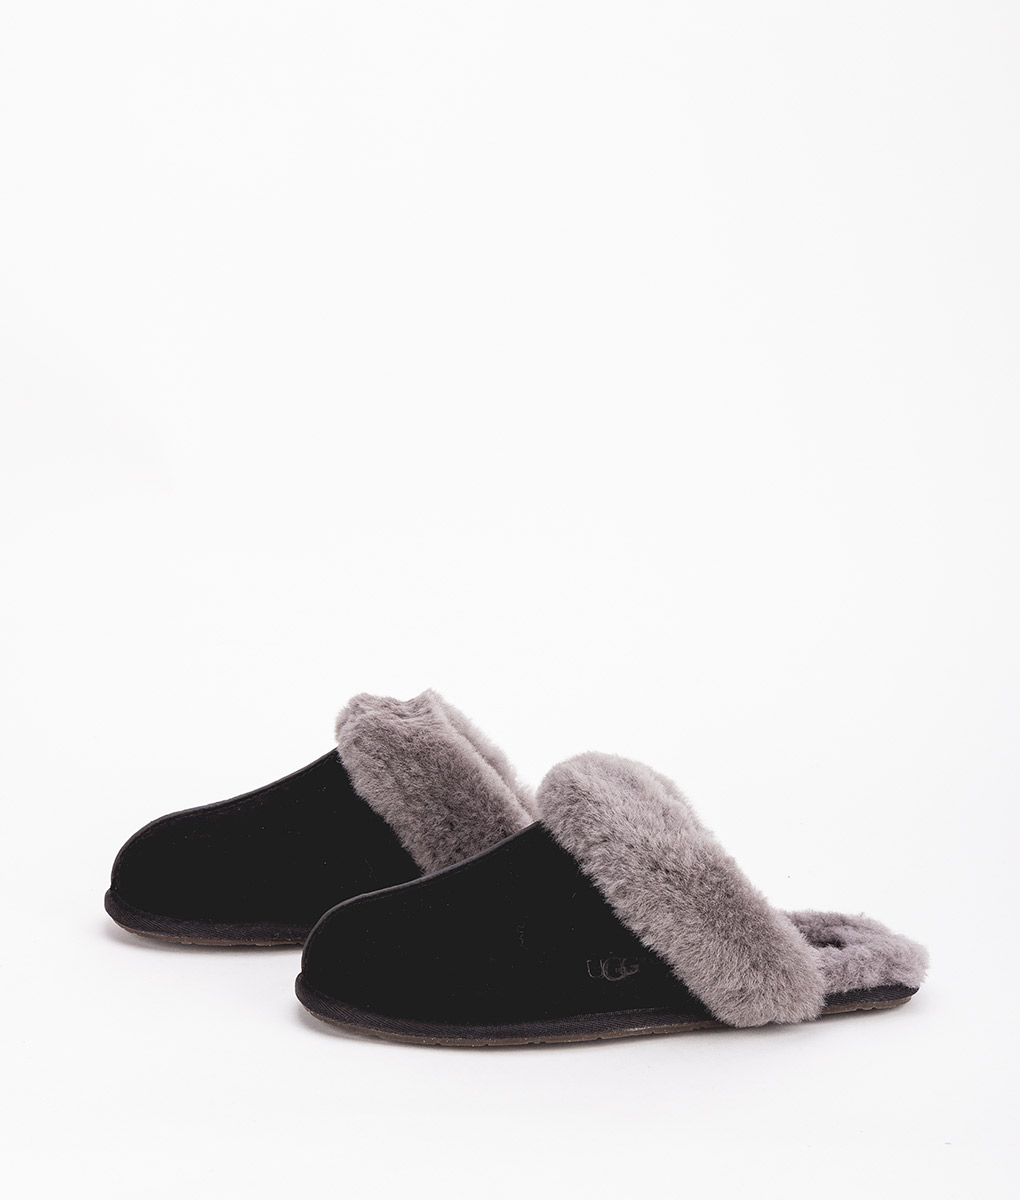 585465c71cd UGG Women Slippers 5661 SCUFFETTE II, Black Grey